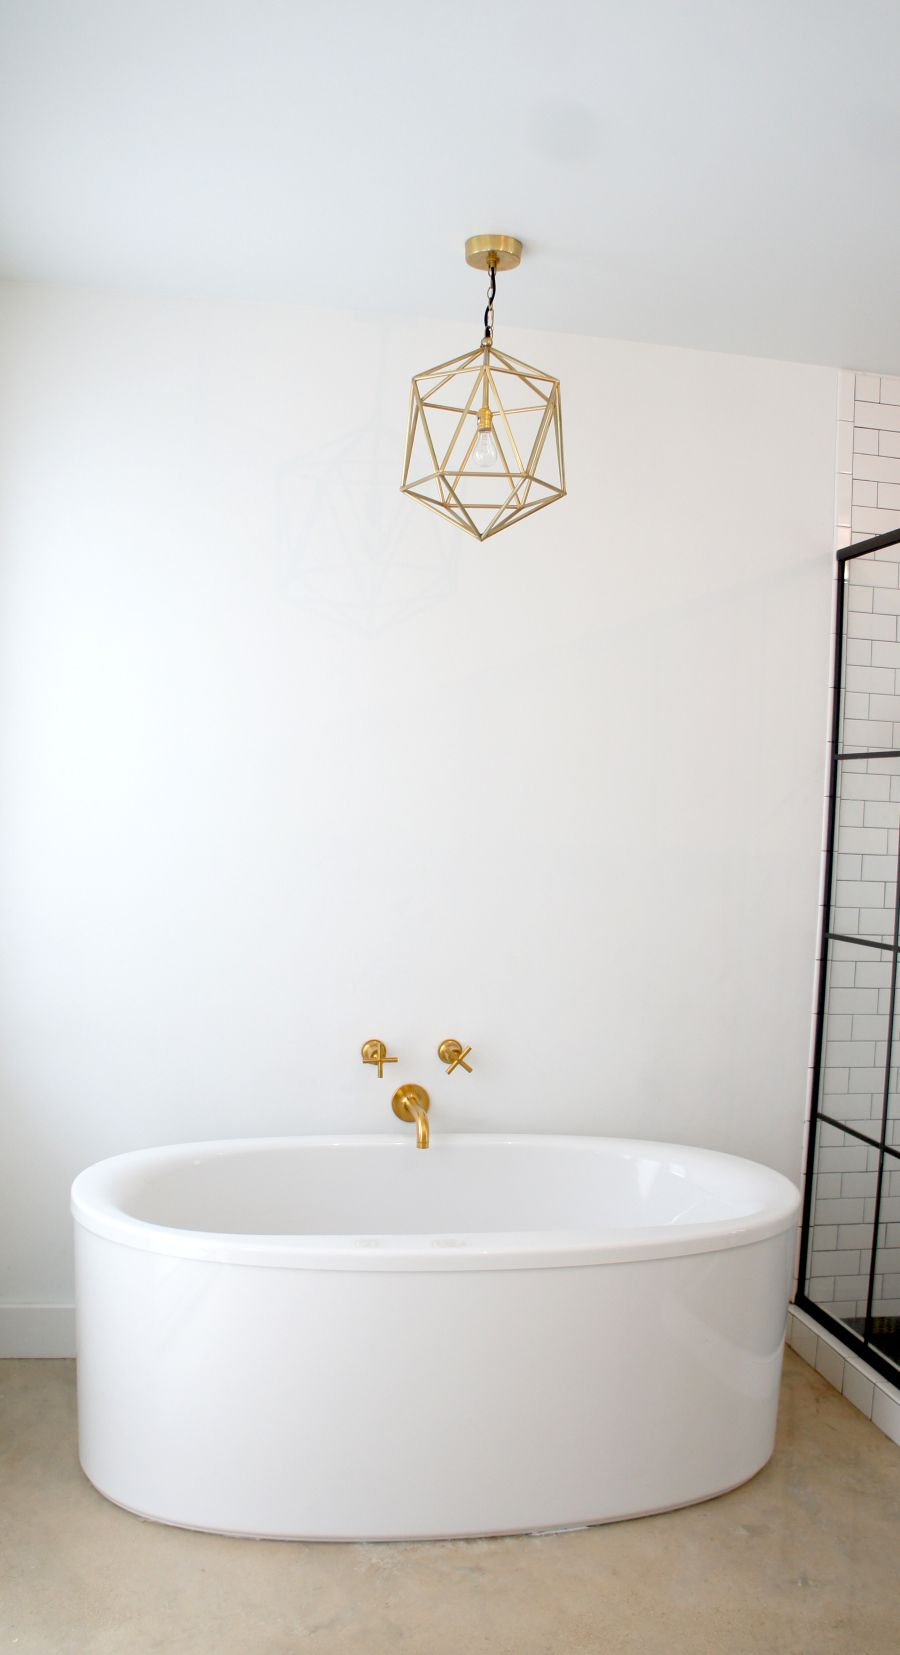 A Modern White Free Standing Tub And A Gold Chandelier Bathroom